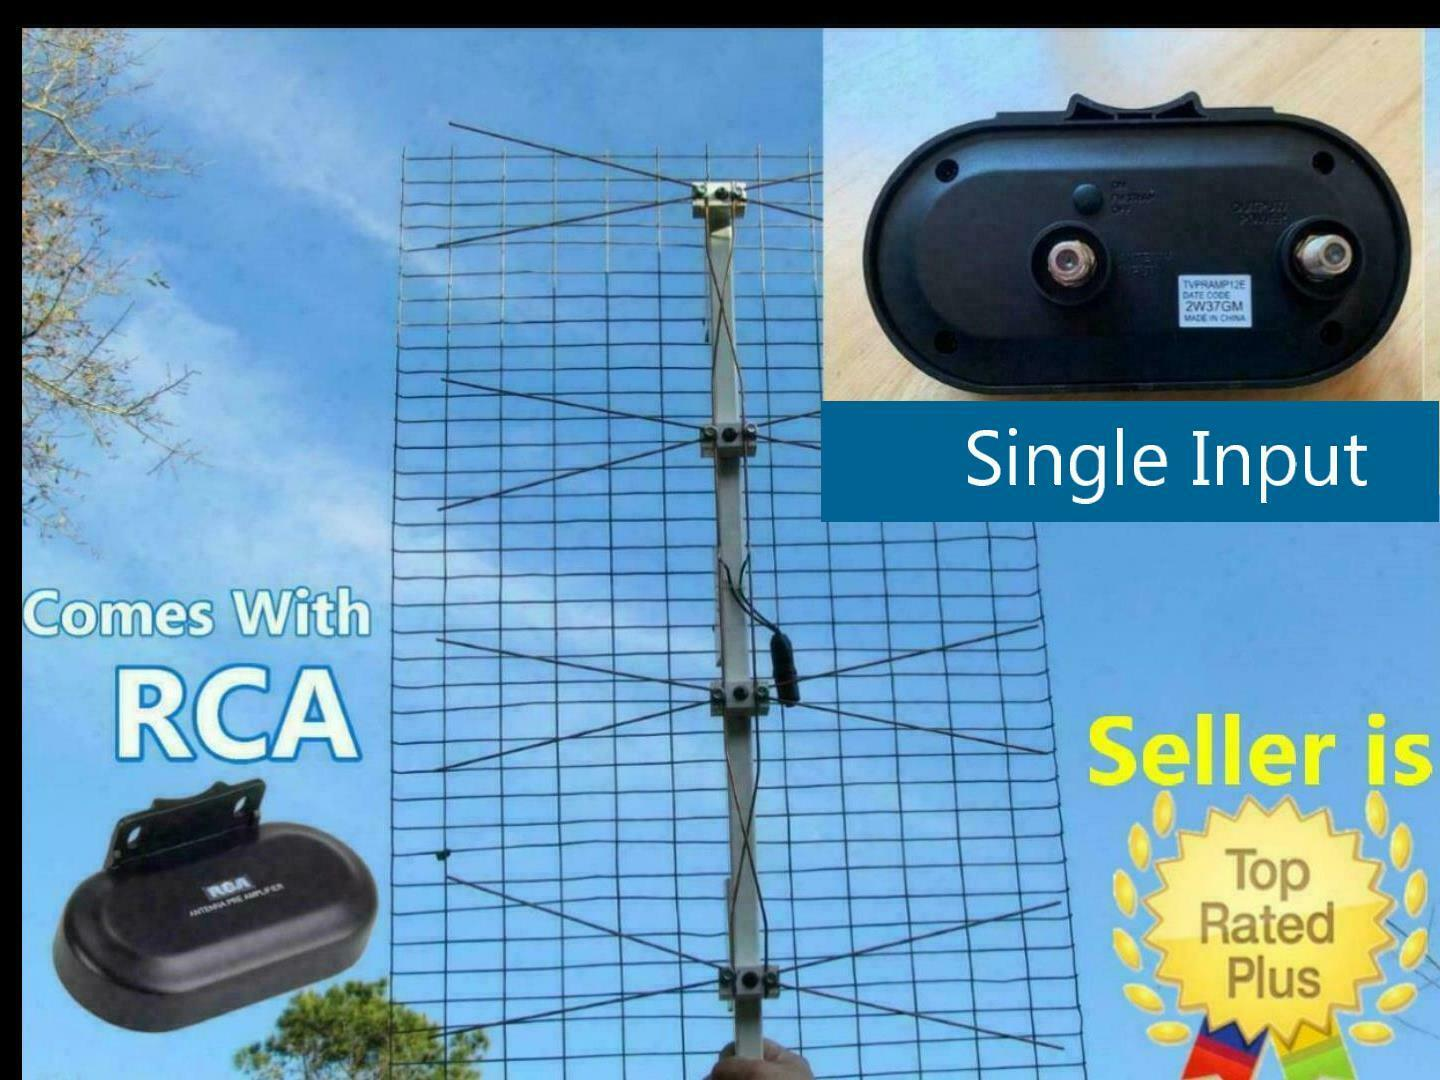 The Ultimate Outdoor TV Antenna Comes With RCA Preamplifier Booster. Available Now for 125.00